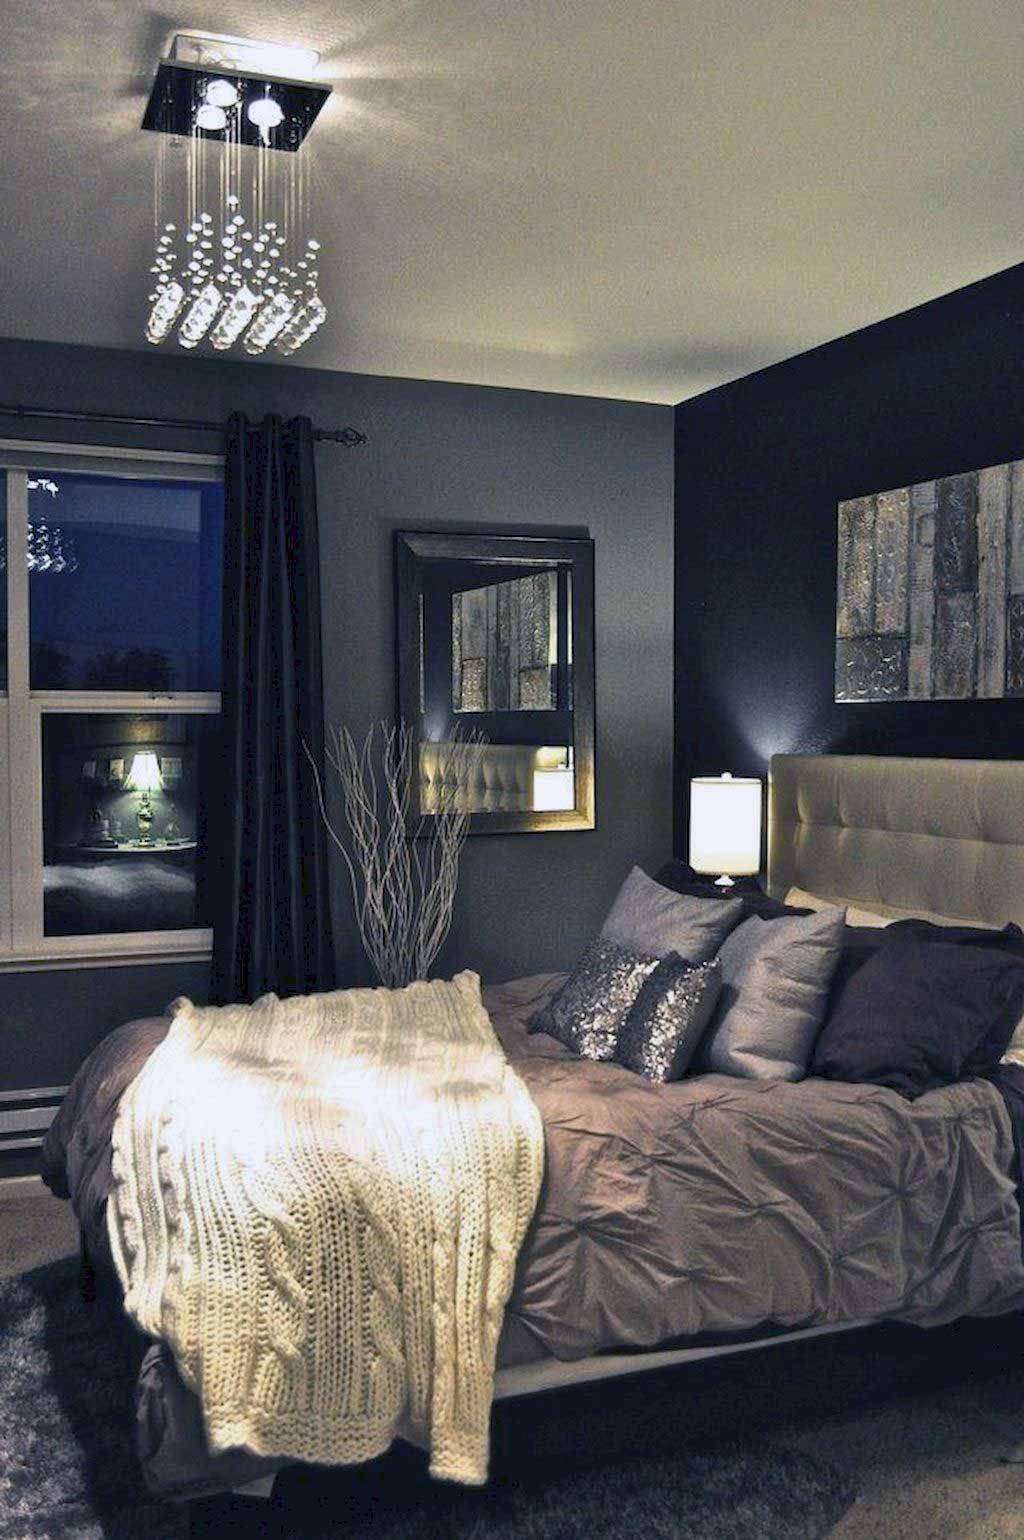 36 Easy Diy Projects Apartment Bedroom Inspirations Luxurious Bedrooms Bedroom Designs For Couples Bedroom Interior